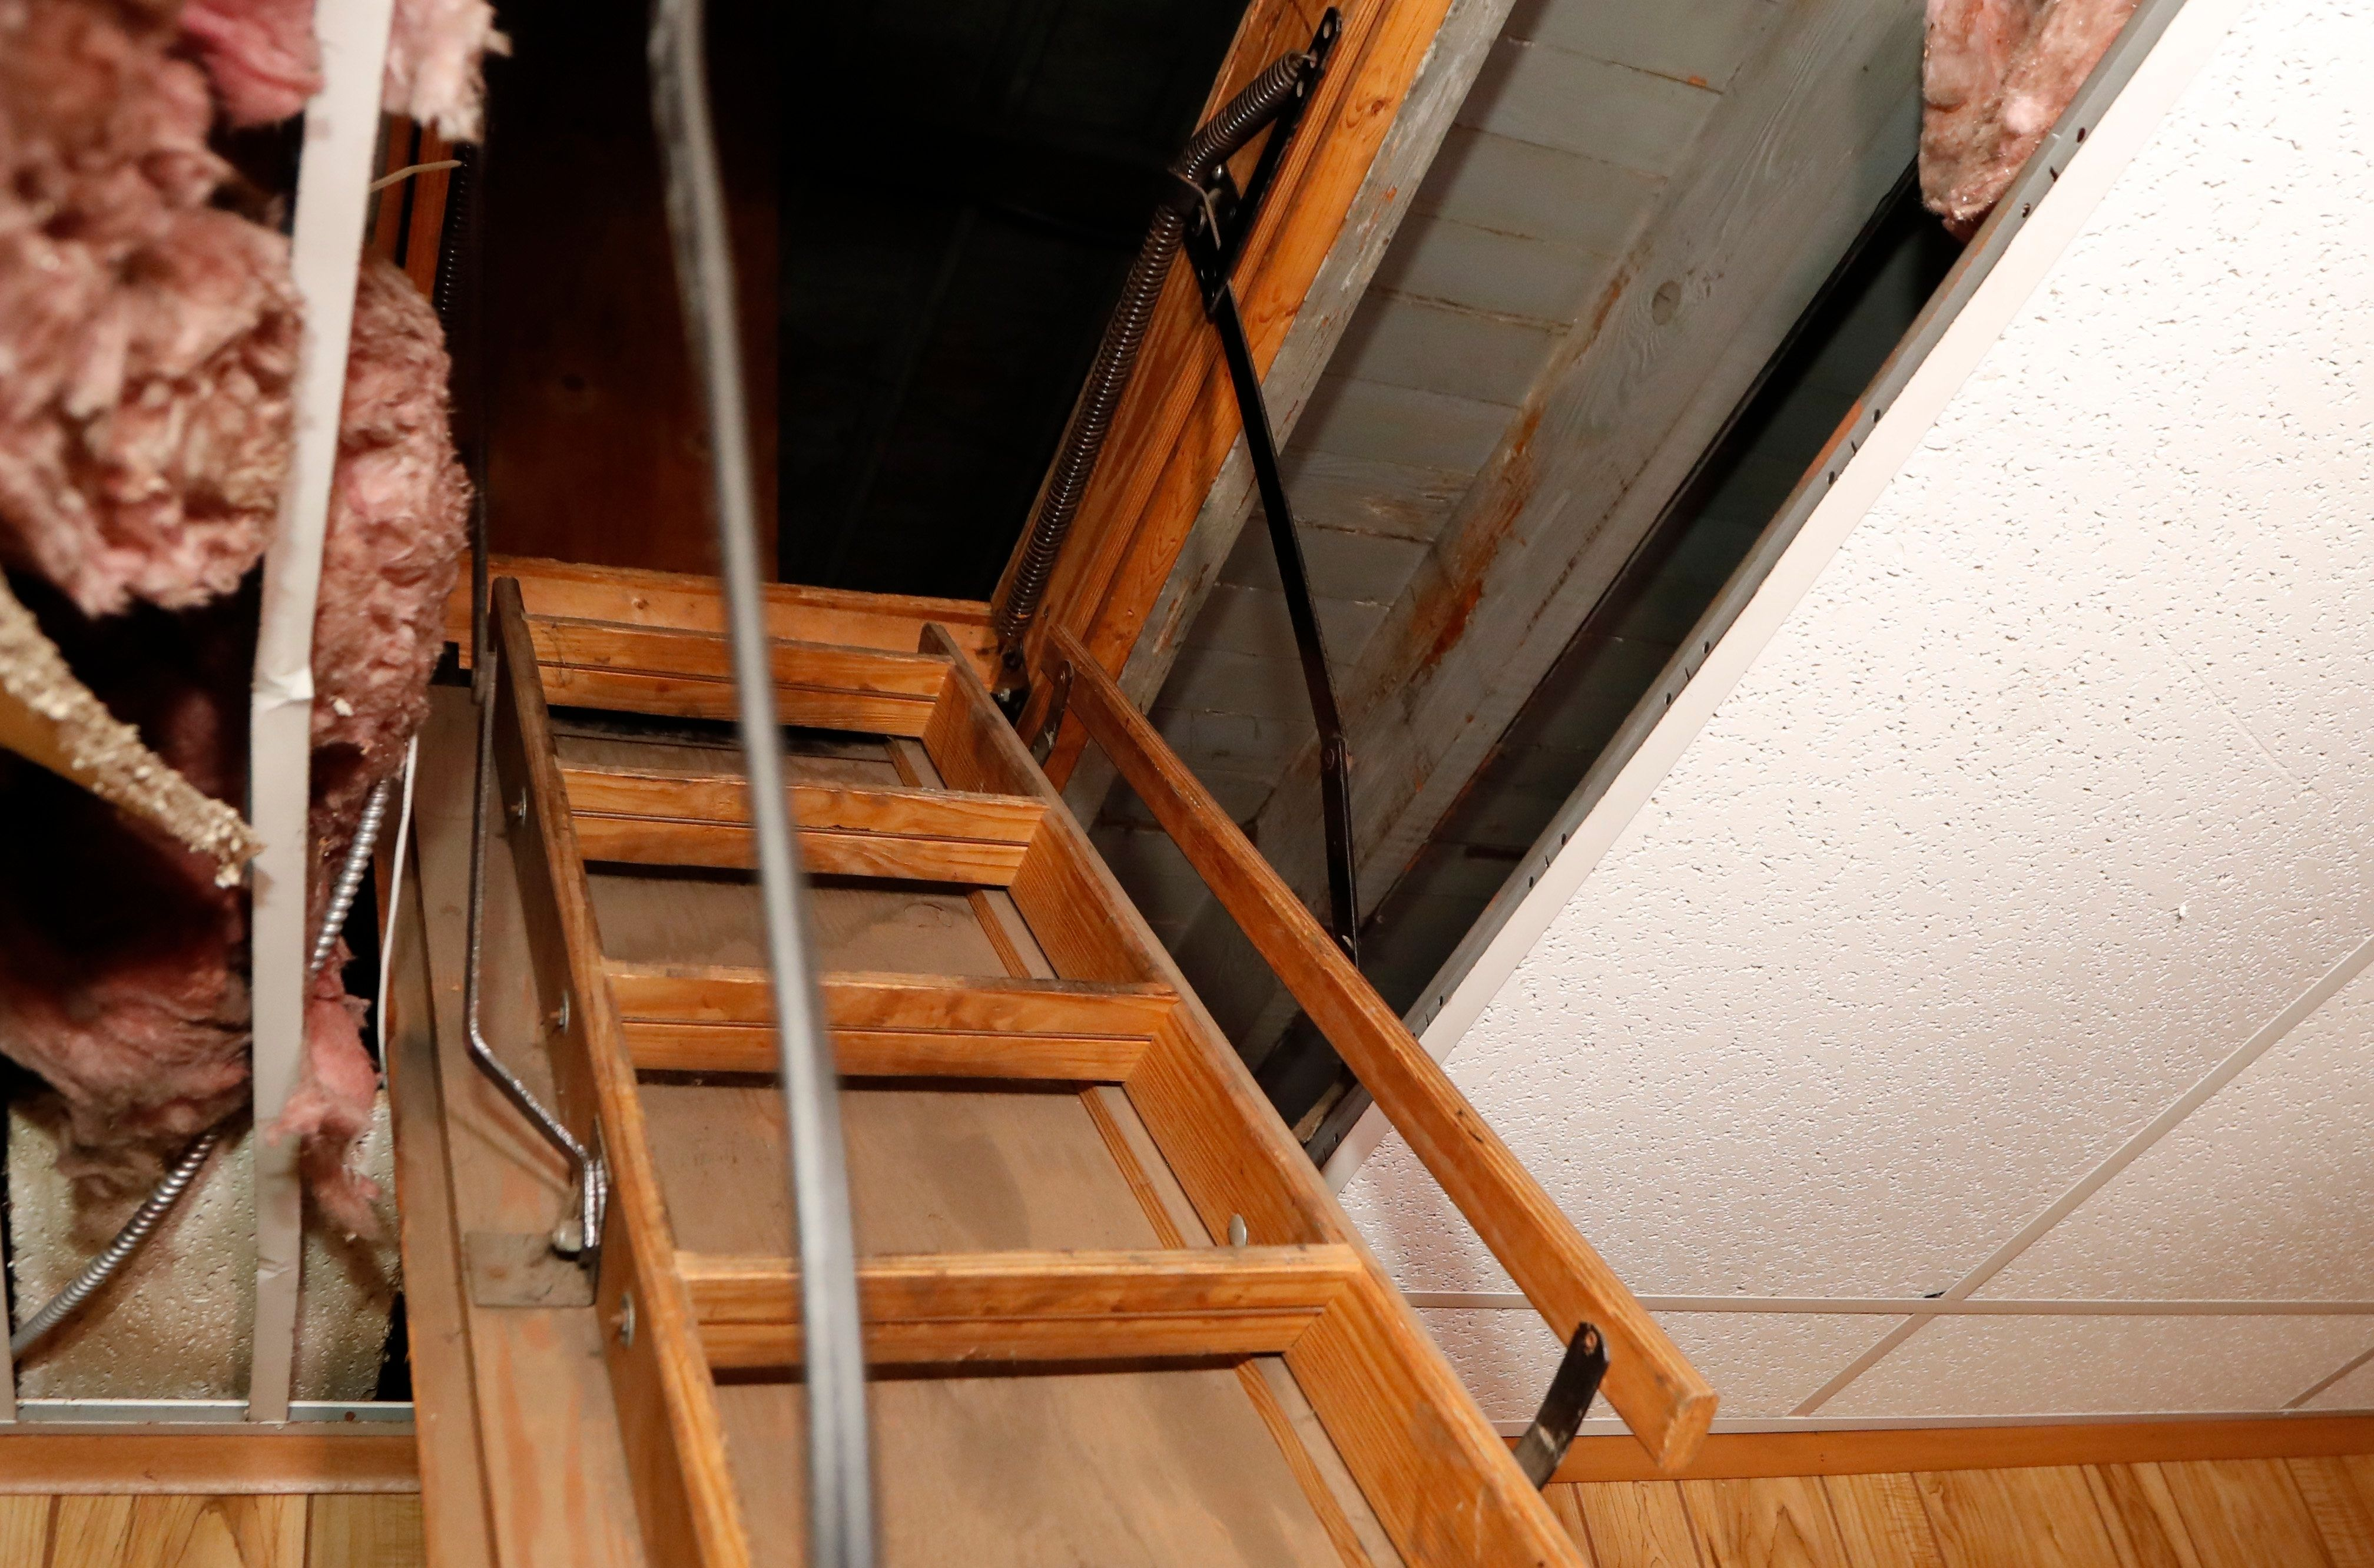 A small crawlspace near the top of the pull-down ladder at the former Cantrell Funeral Home, seen Monday, Oct. 15, 2018. (AP